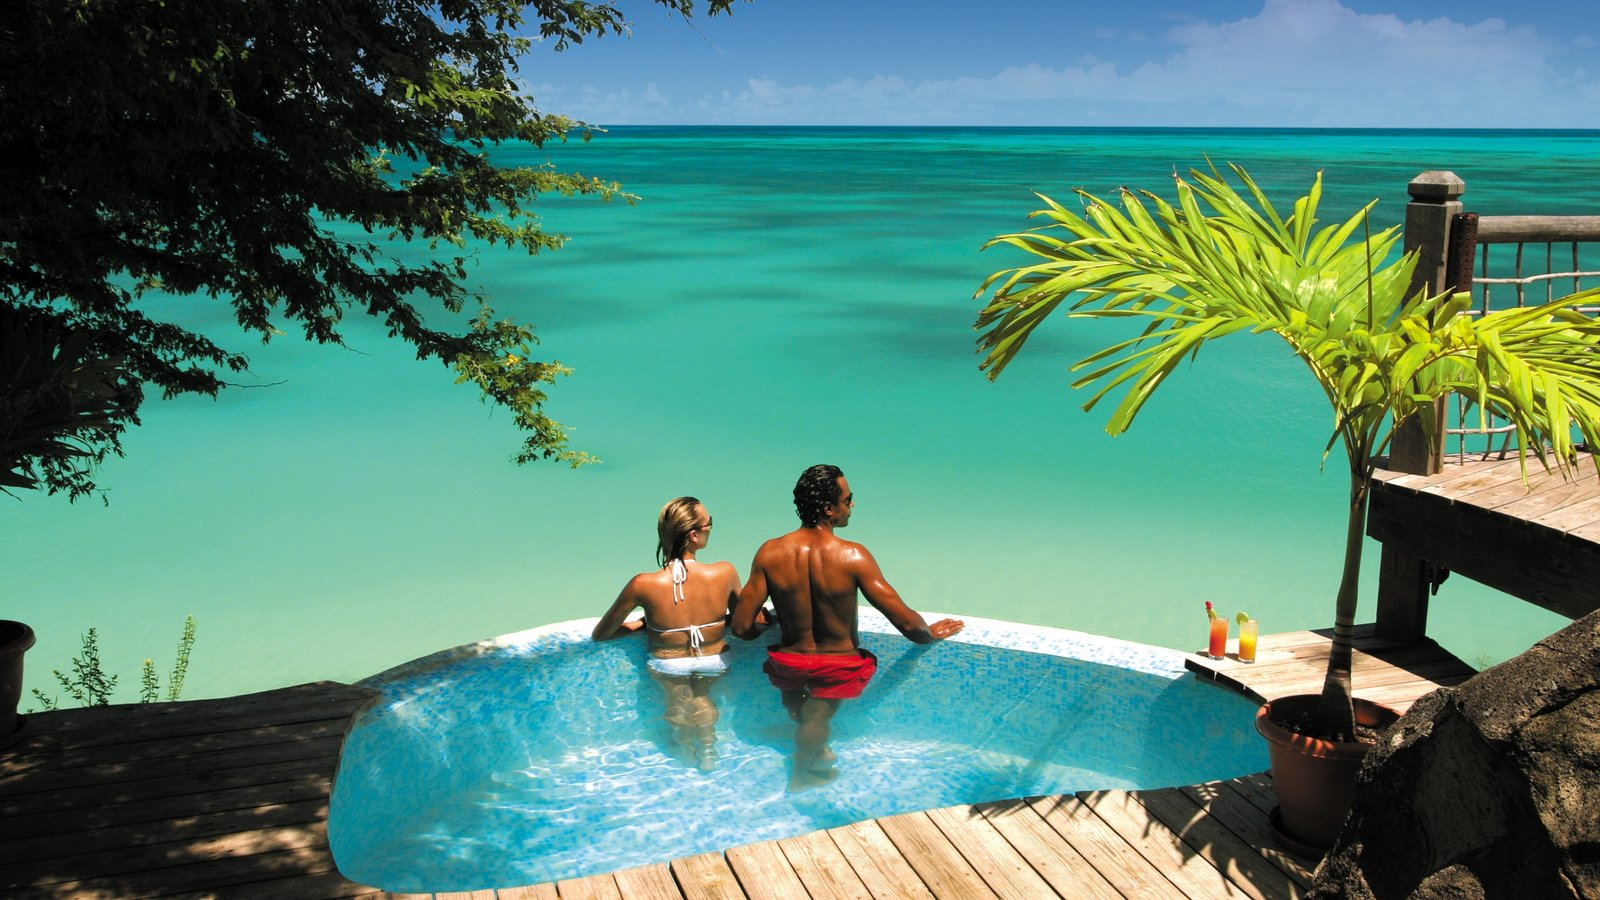 Antigua showing swimming, a luxury hotel or resort and general coastal views